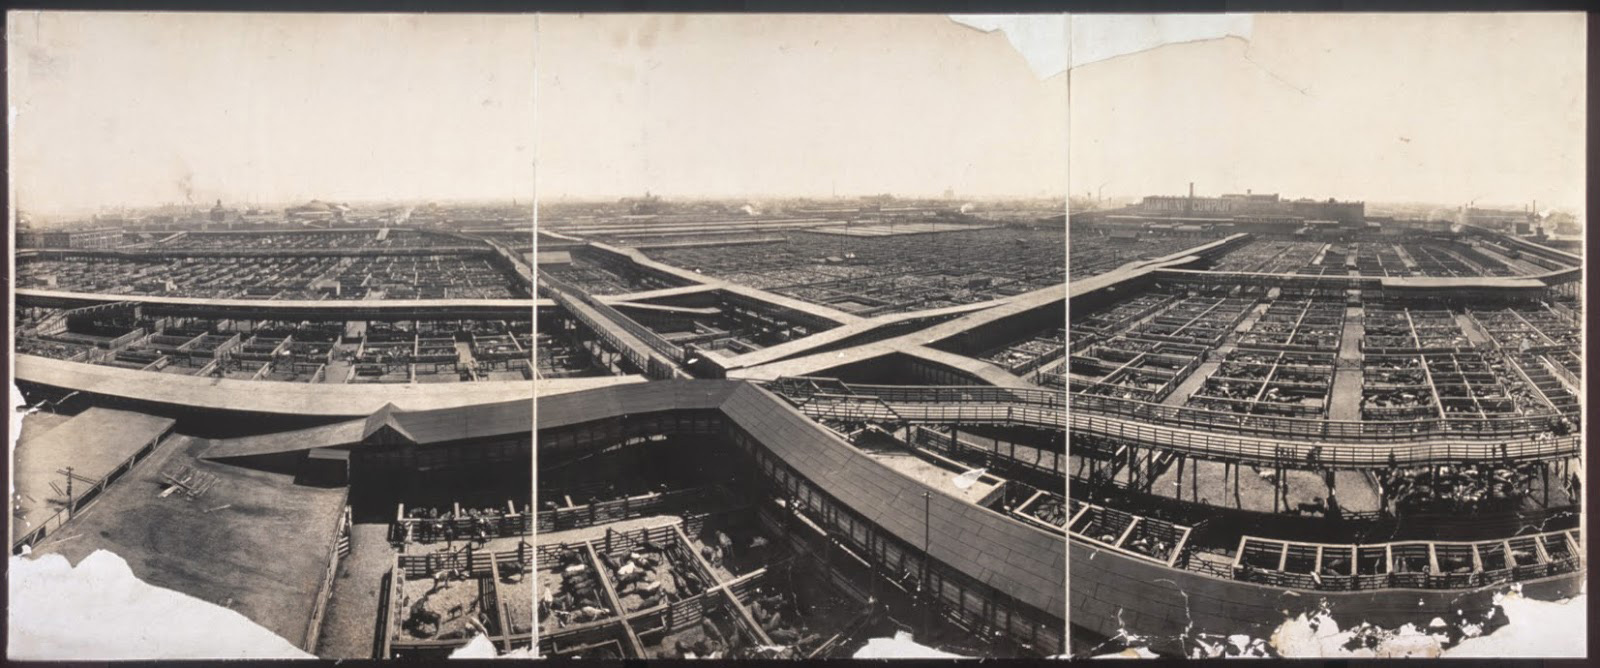 birds eye view of Chicago Union Stockyard, 1903